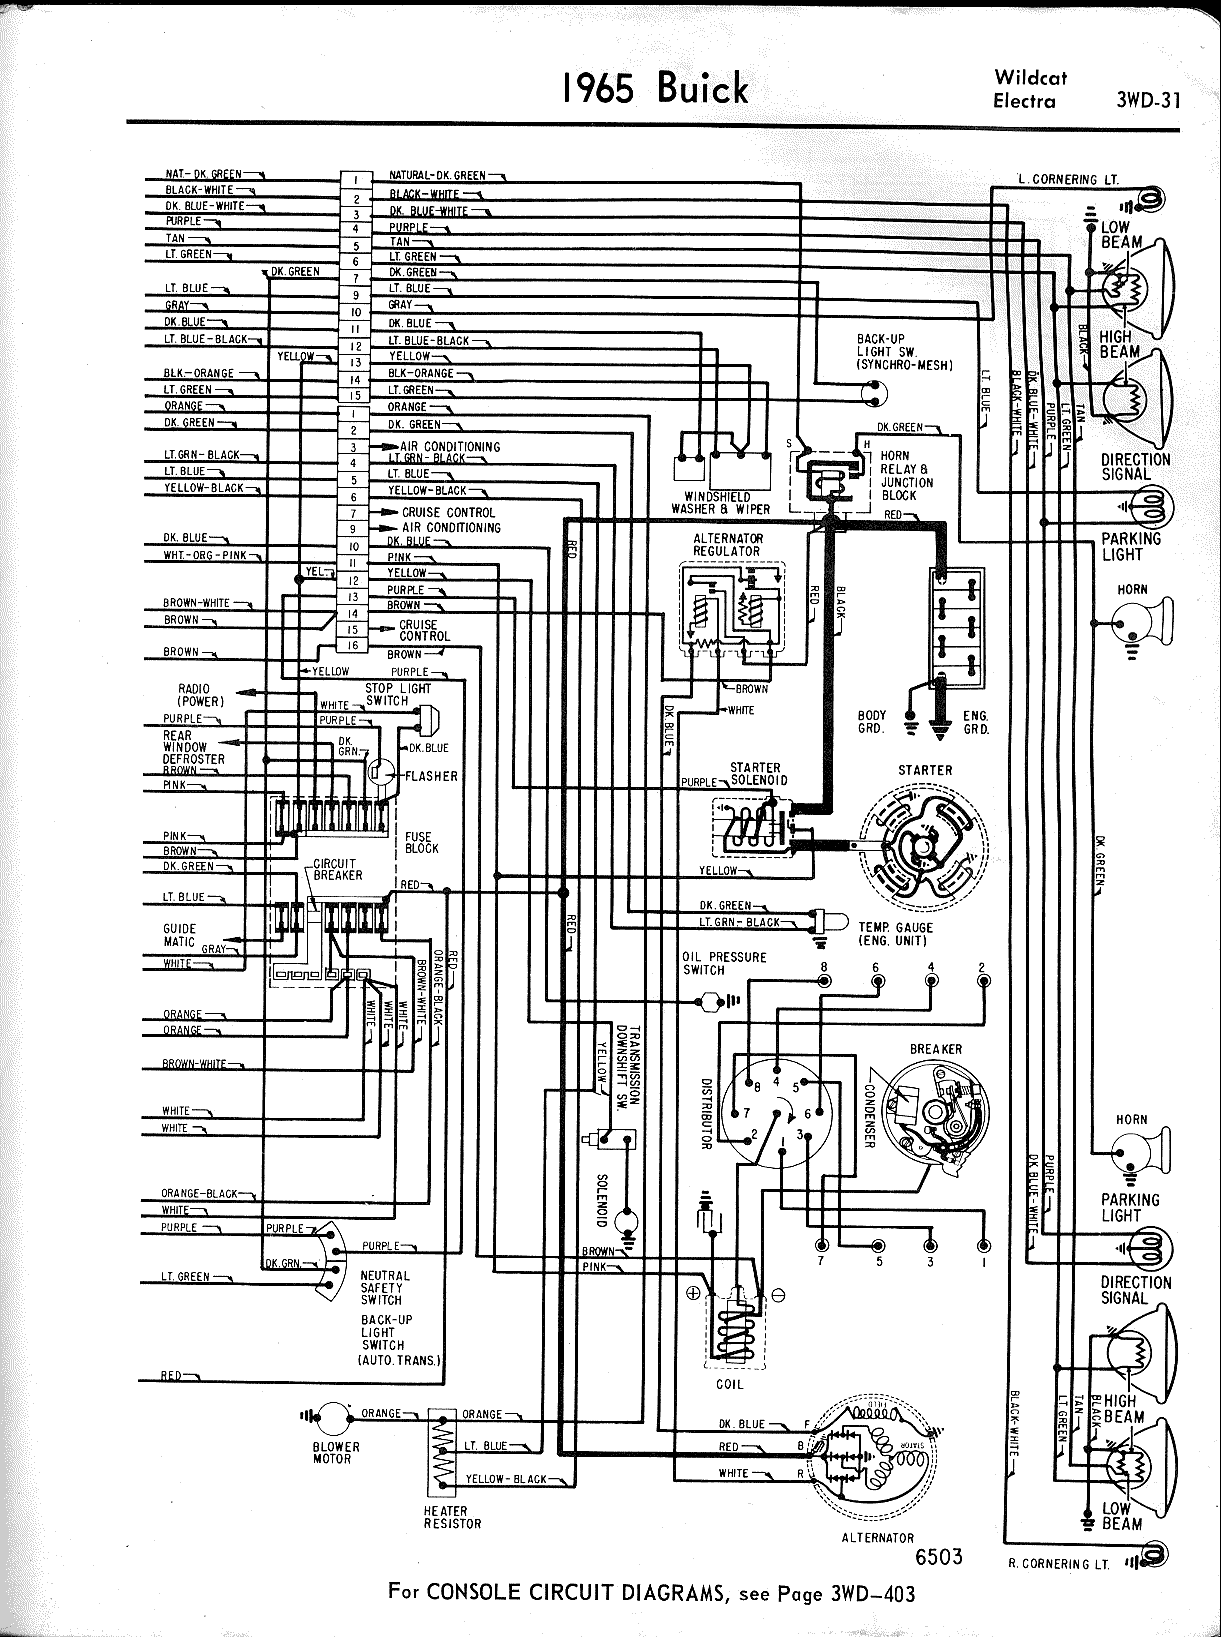 Free Buick Wiring Diagrams Library 2005 Lesabre Diagram Picture 1957 1965 Auto Electrical